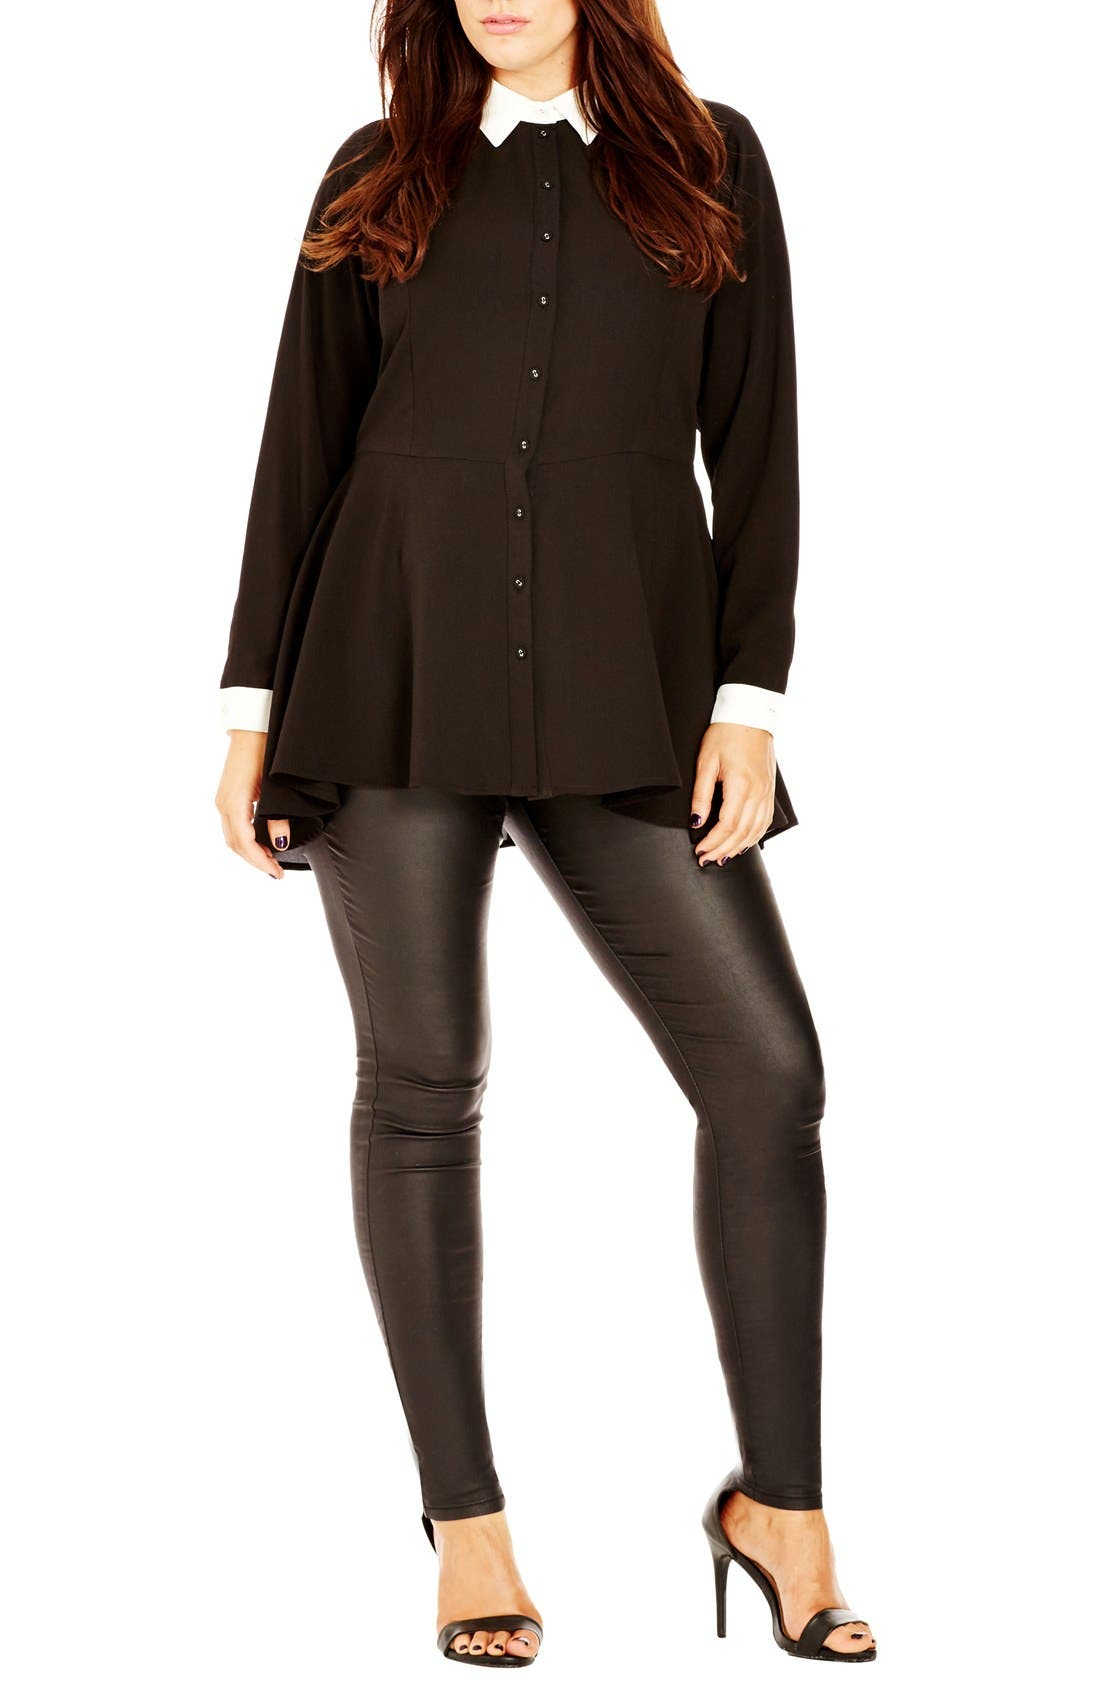 Alternate Image 1 Selected - City Chic Contrast Trim Fit & Flare Shirt (Plus Size)